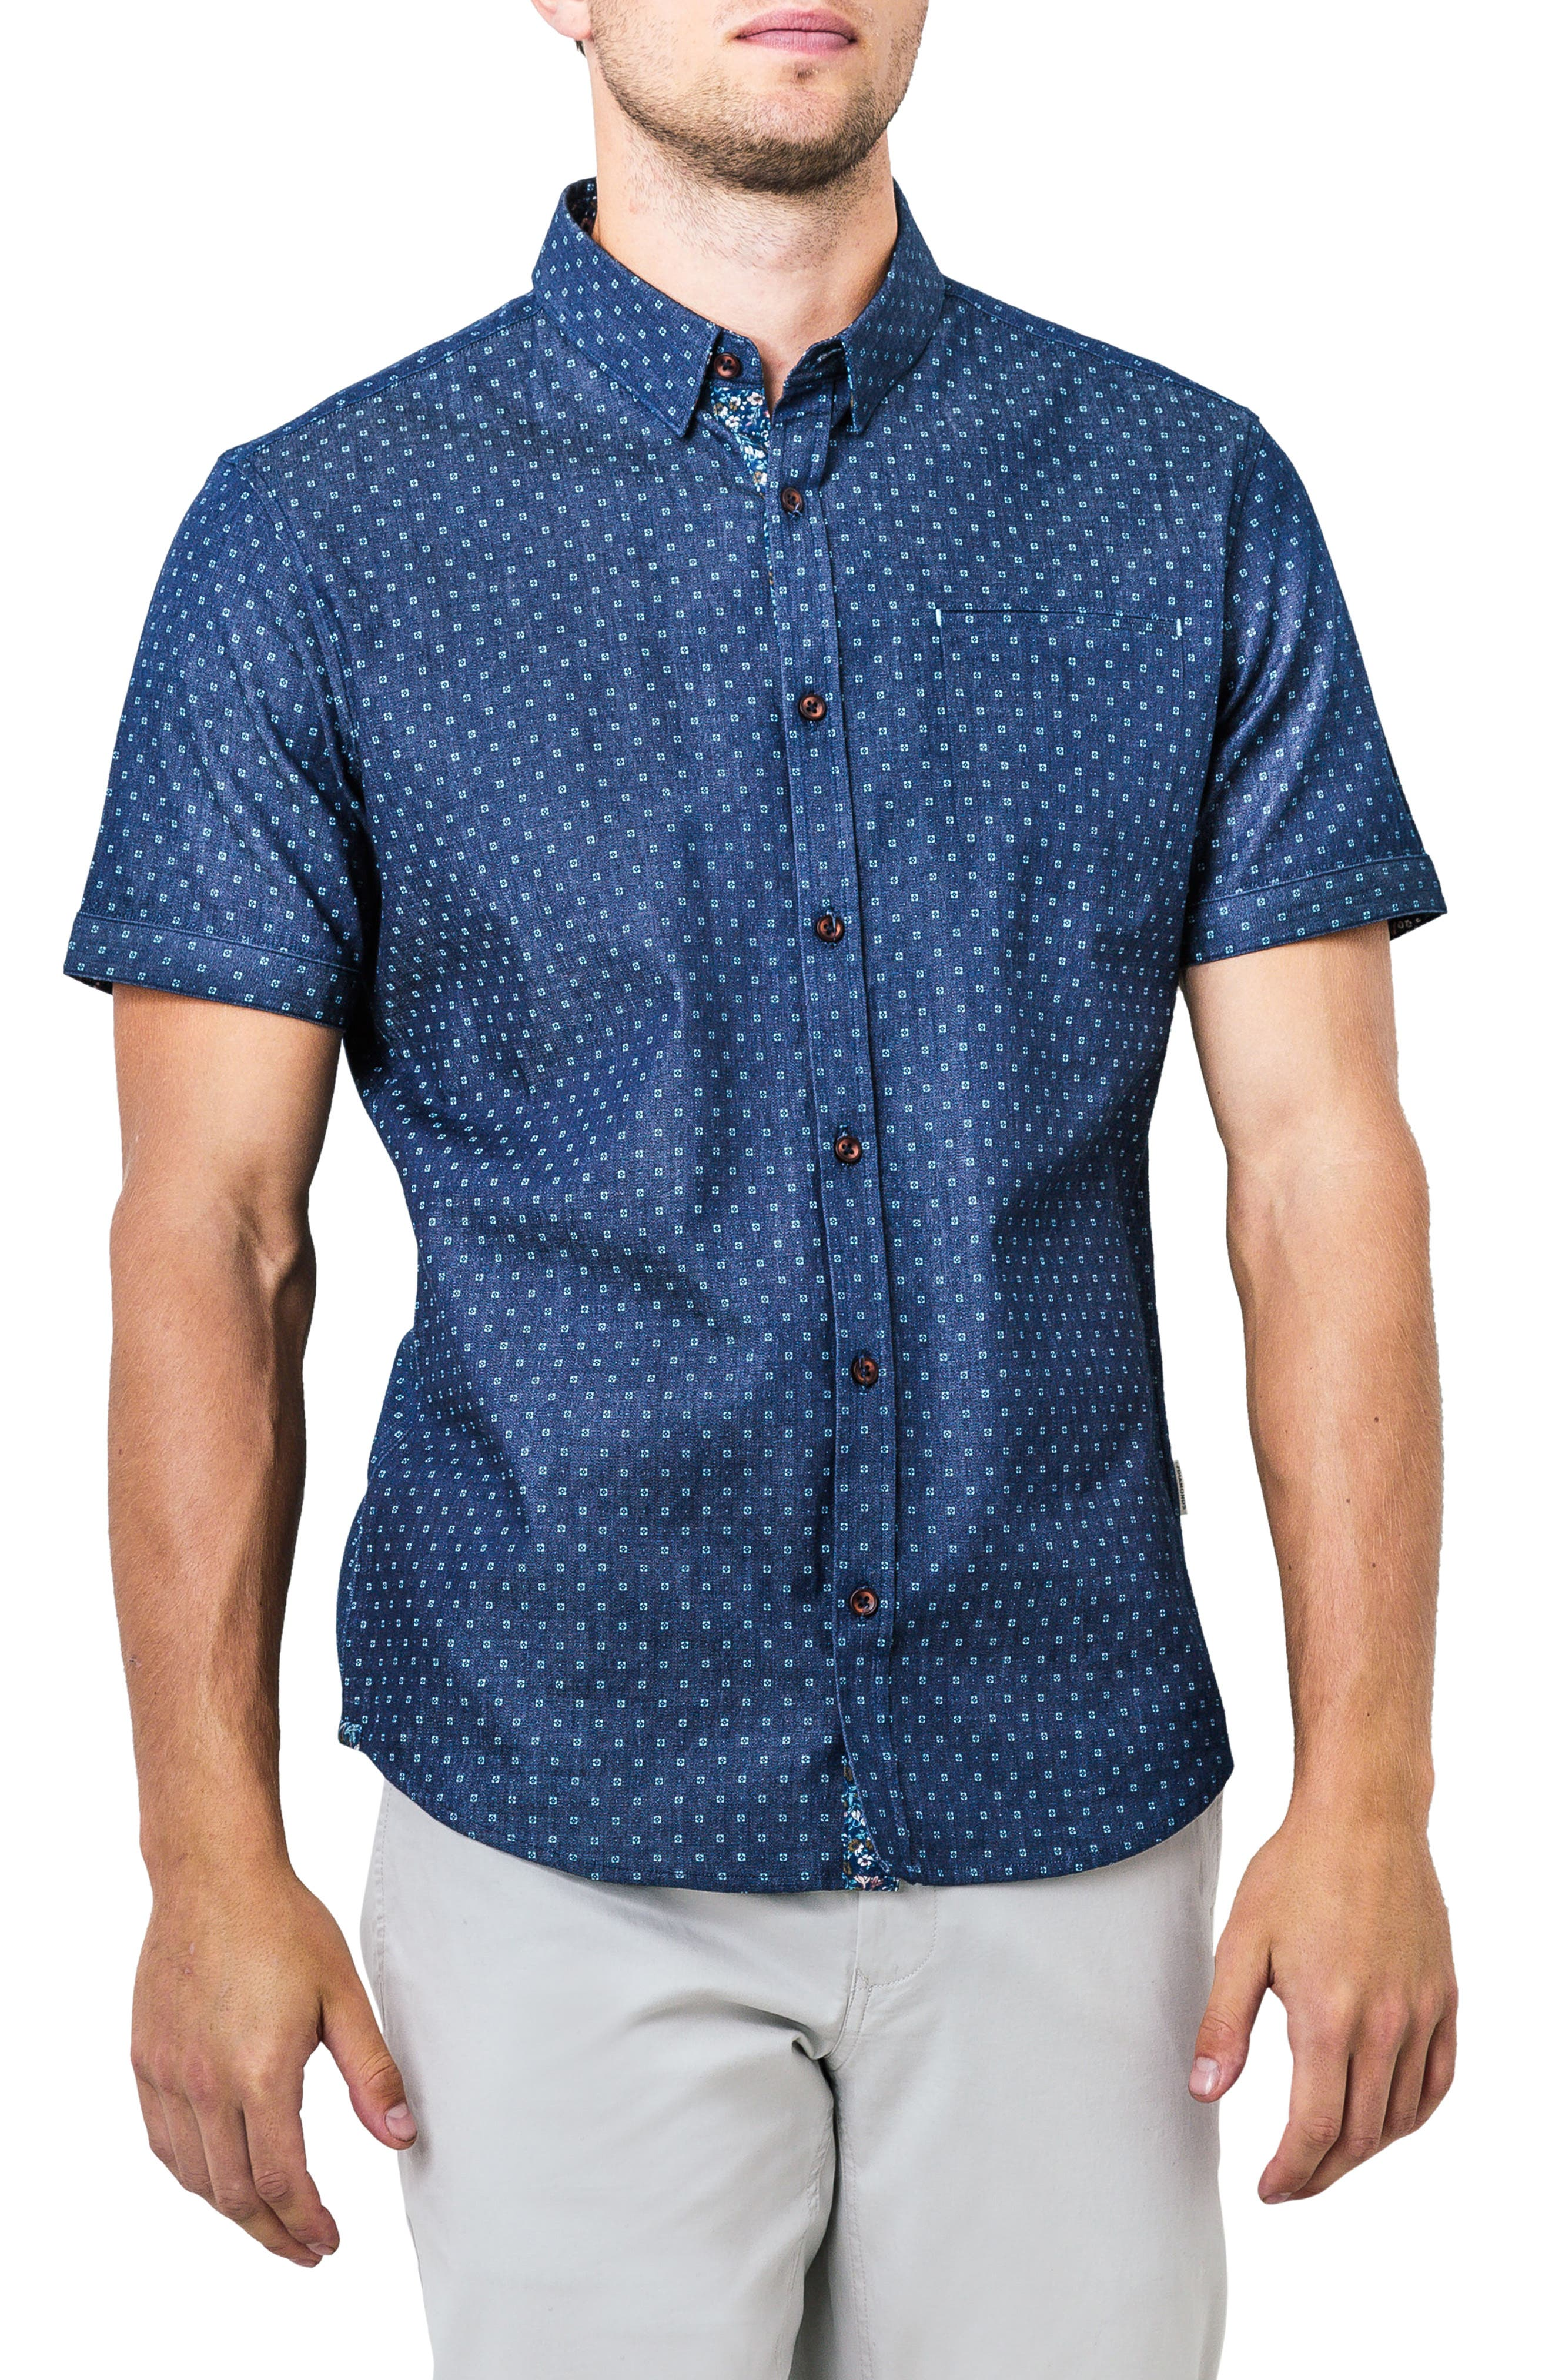 Innervision Woven Shirt,                         Main,                         color,